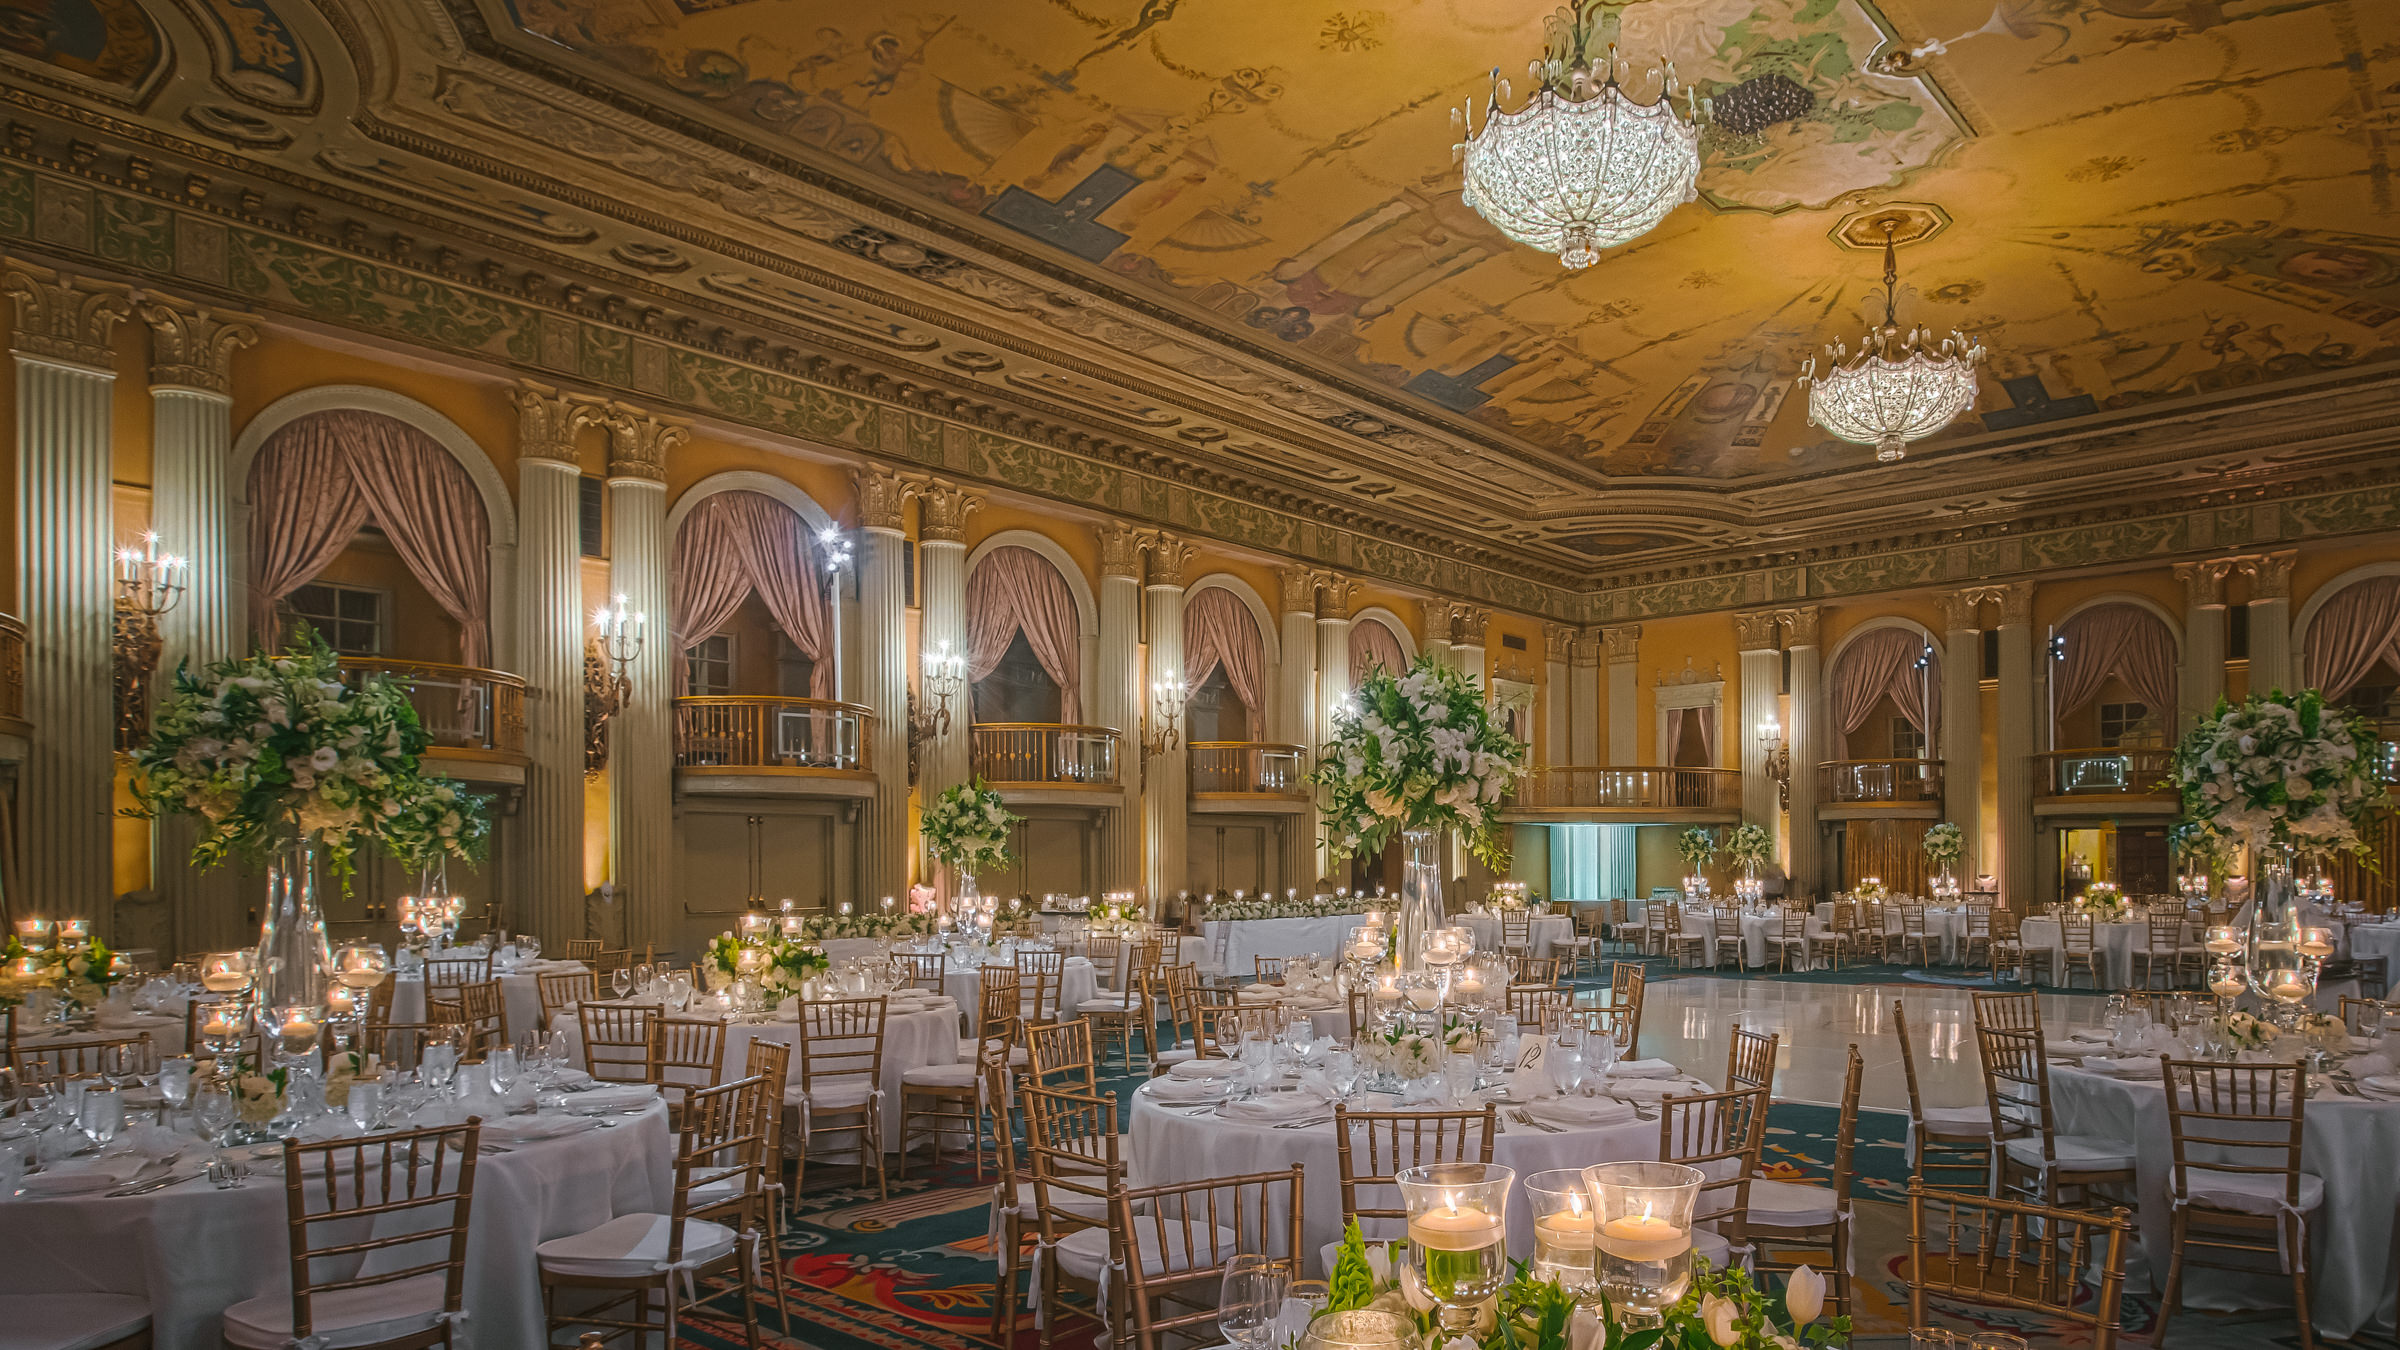 ballroom reception seating and decor with tall floral centerpieces- photo by Amy and Stuart Photography, los angeles